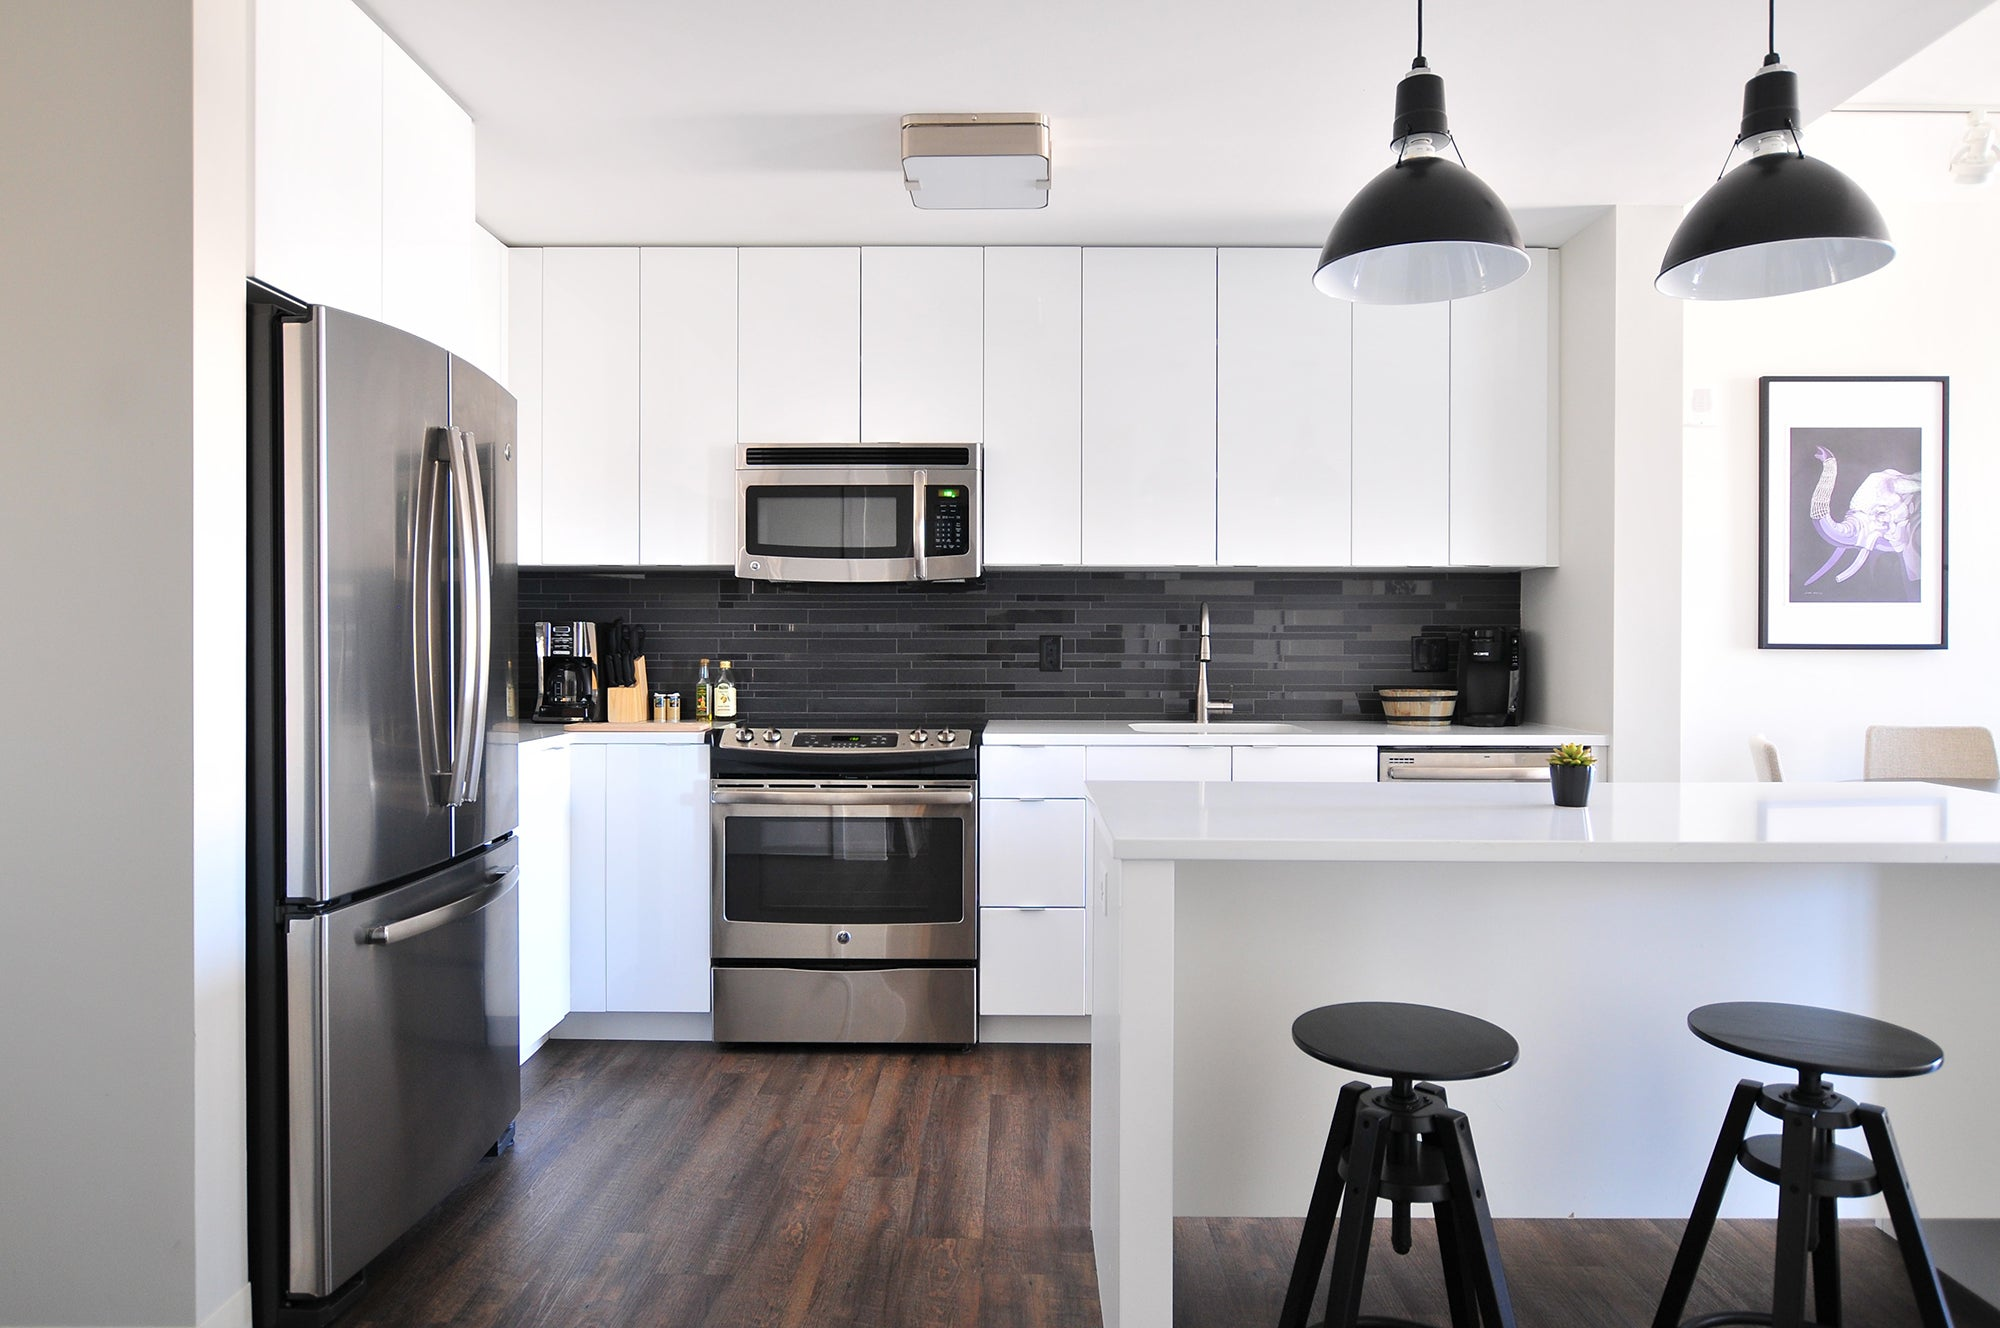 kitchen with stools, an island, and silver appliances